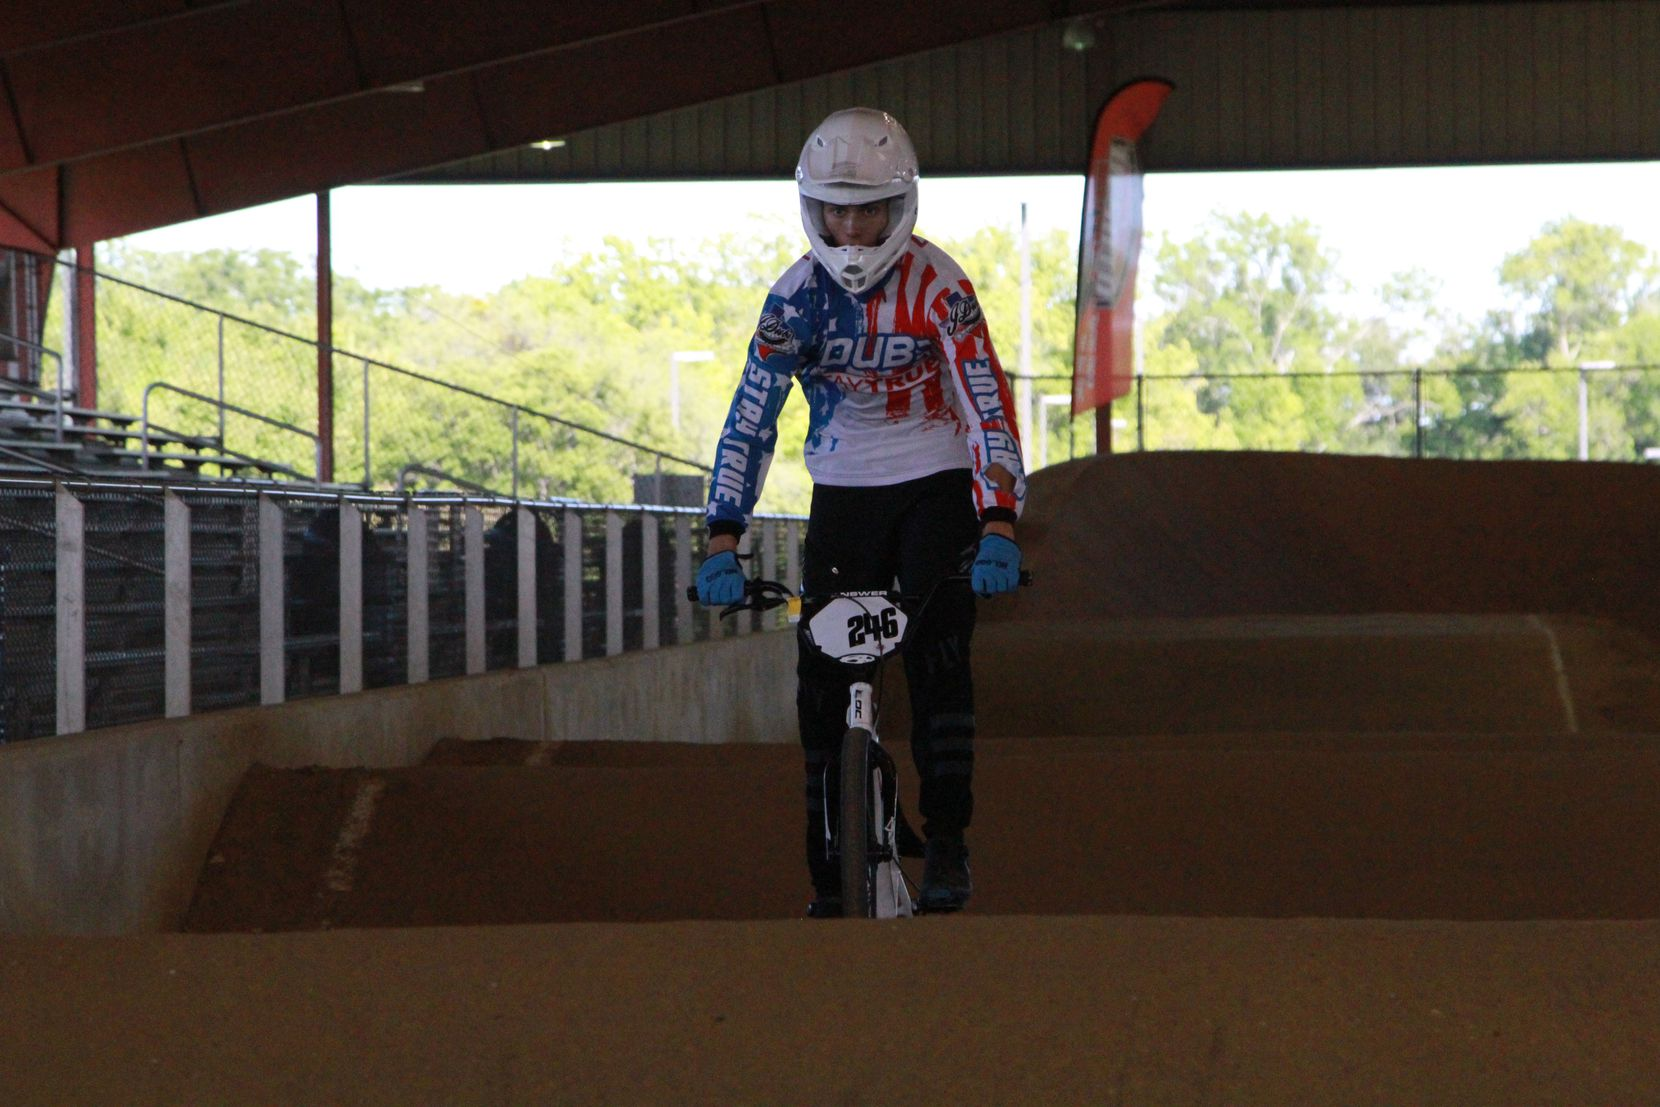 BMX rider Jacoby Irvin puts is caught mid action putting on a show during a demo at DeSoto BMX.